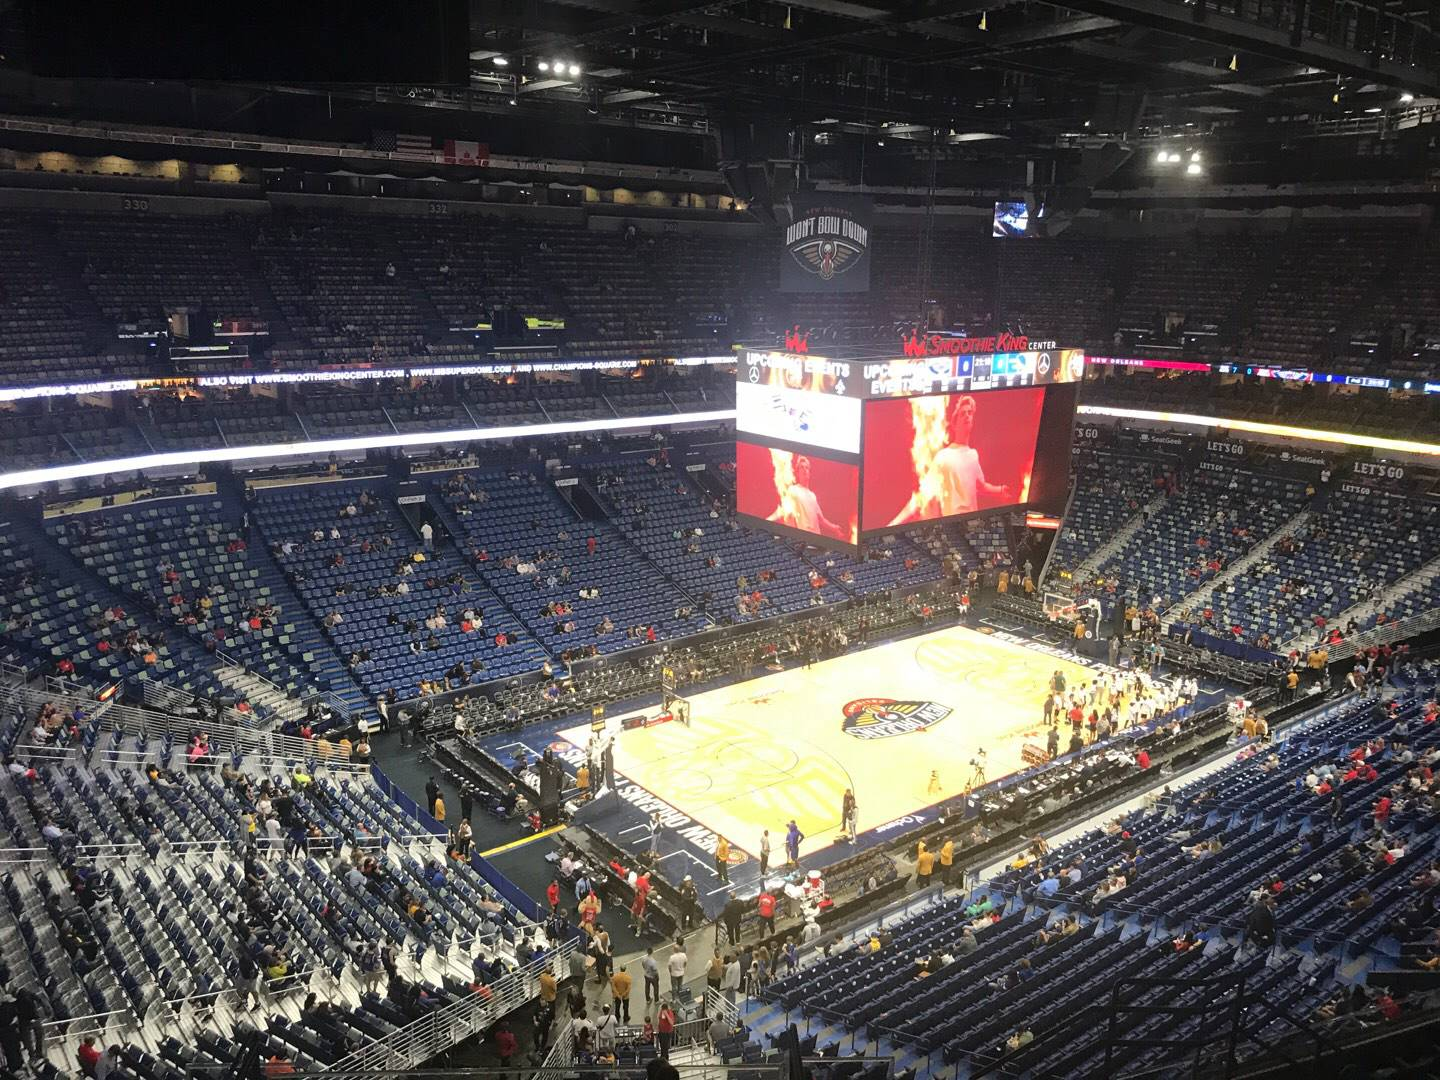 Smoothie King Center Section 320 Row 11 Seat 9